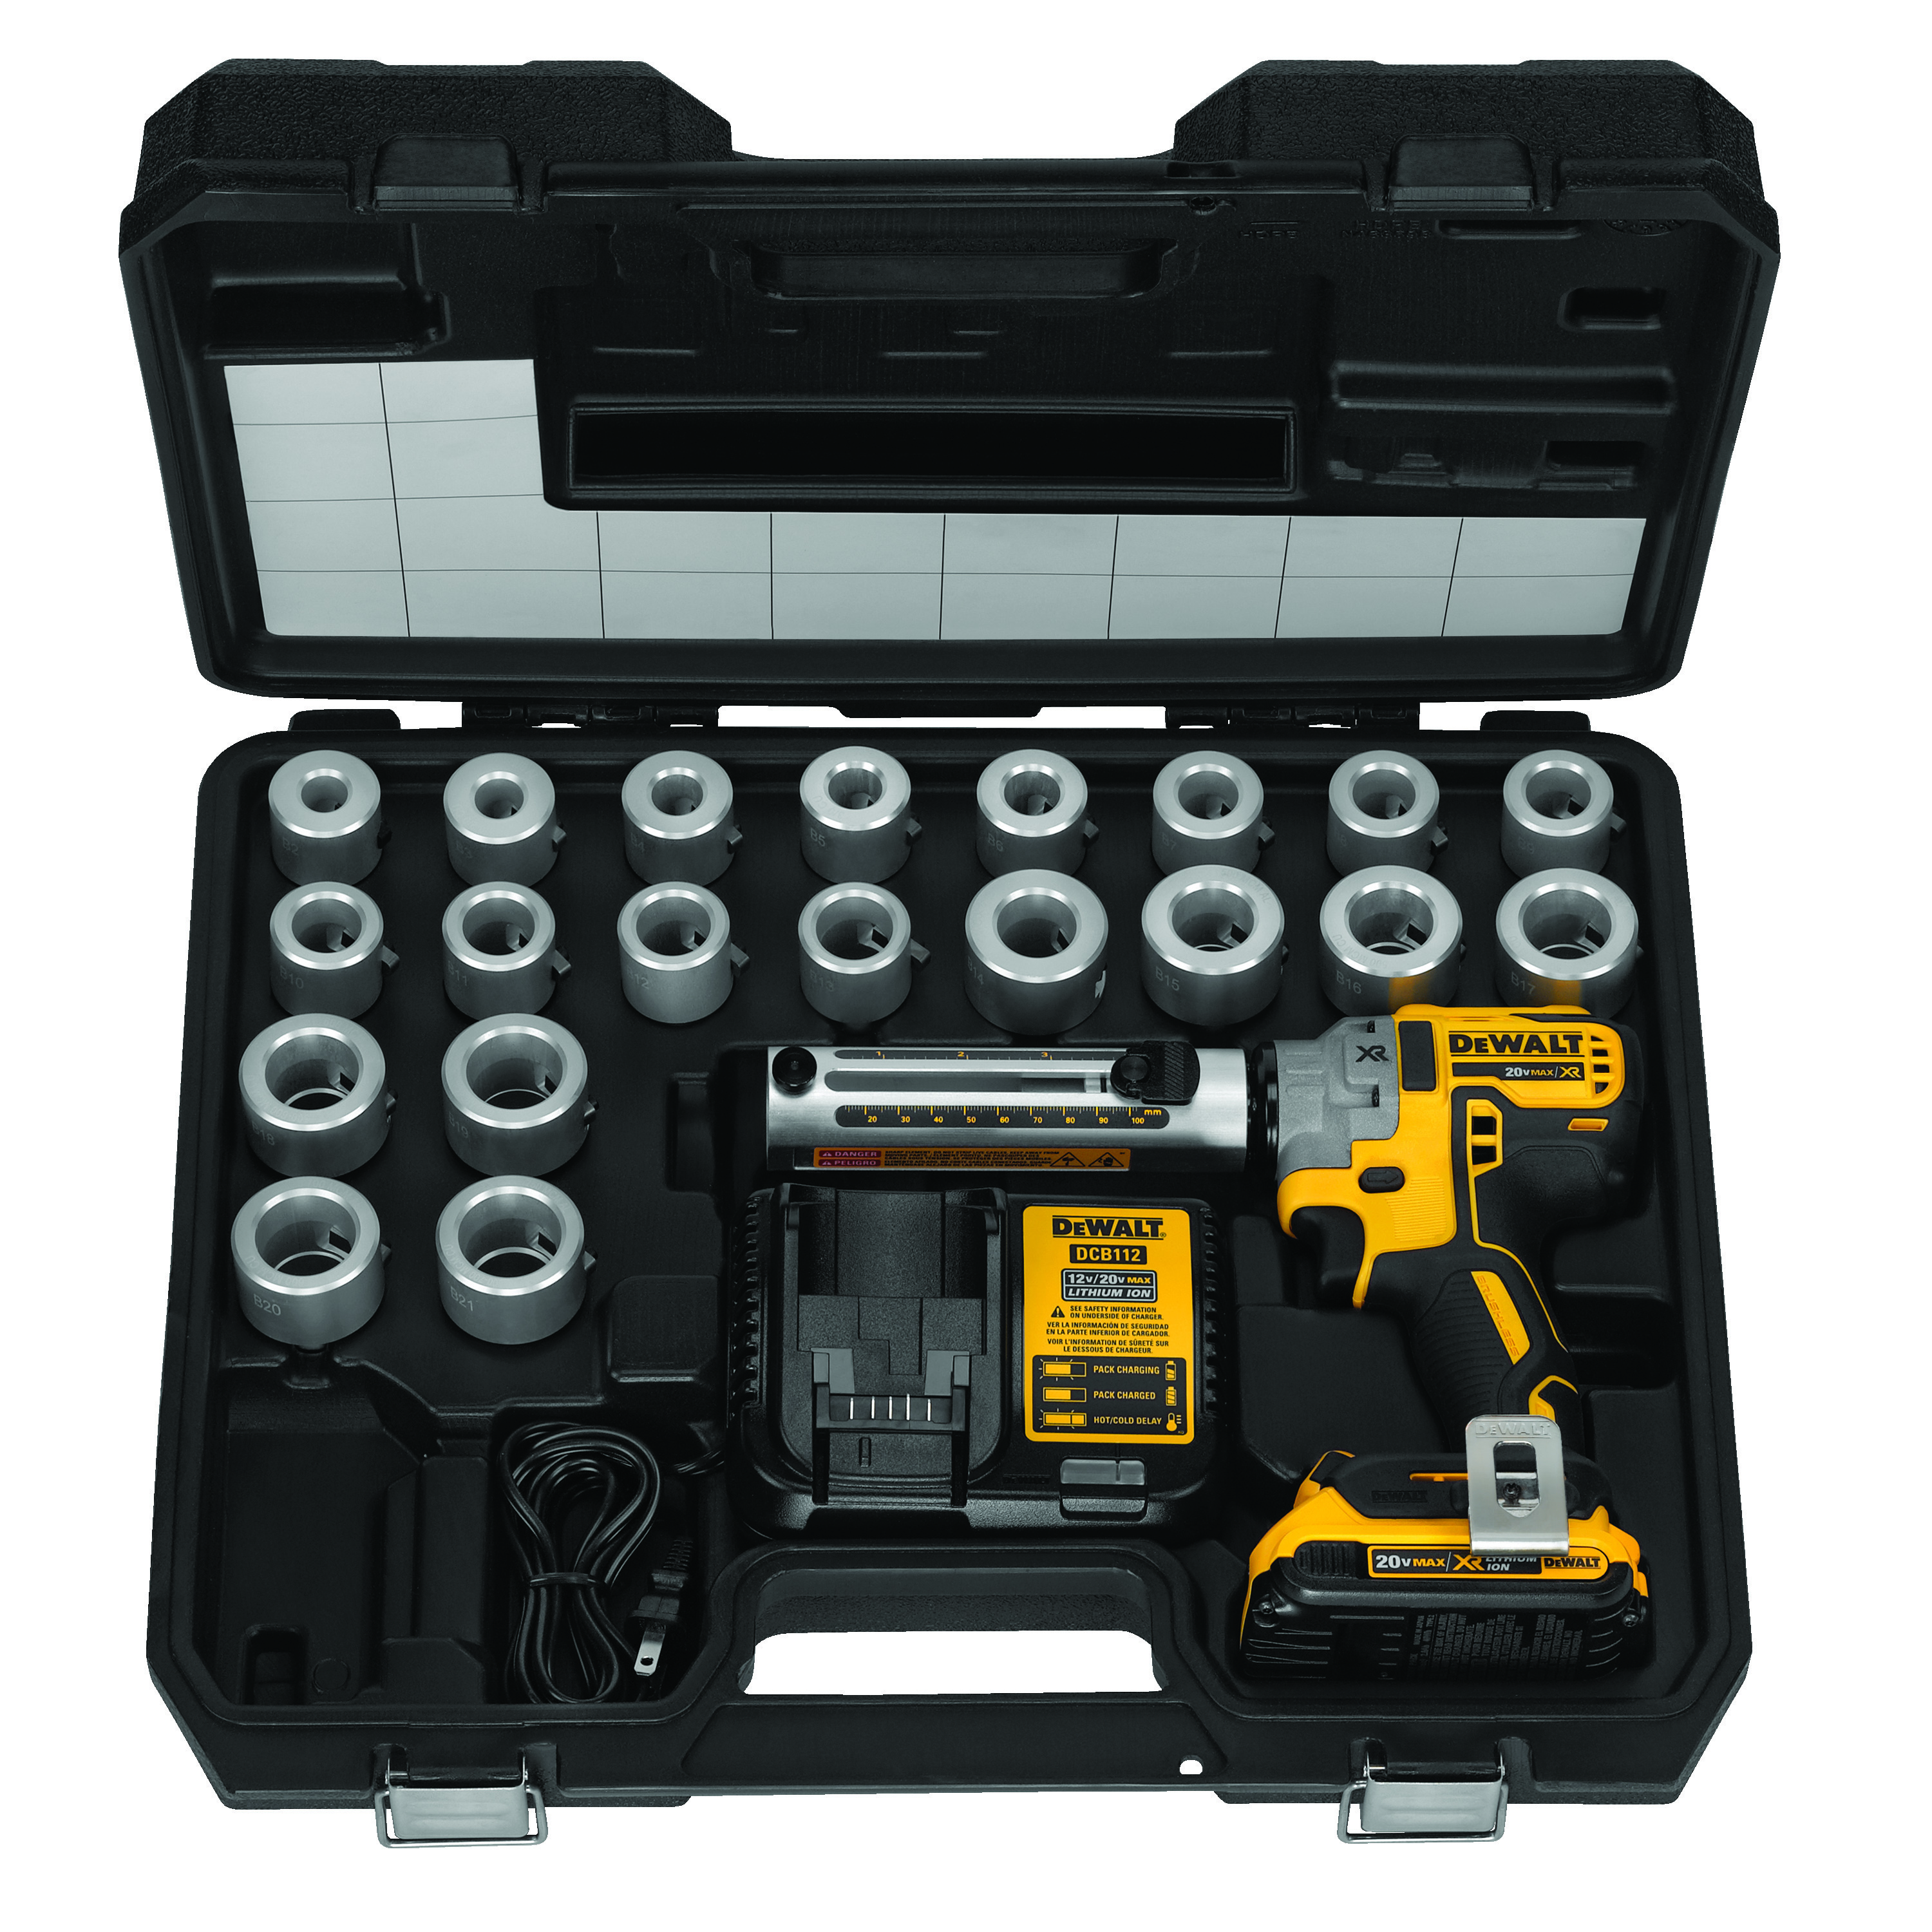 DeWALT® DCE151TD1 Cordless Cable Stripper Kit, 6 AWG to 750 kcmil Copper/Aluminum Cutting, 20 VDC, 2 Ah Lithium-Ion Battery